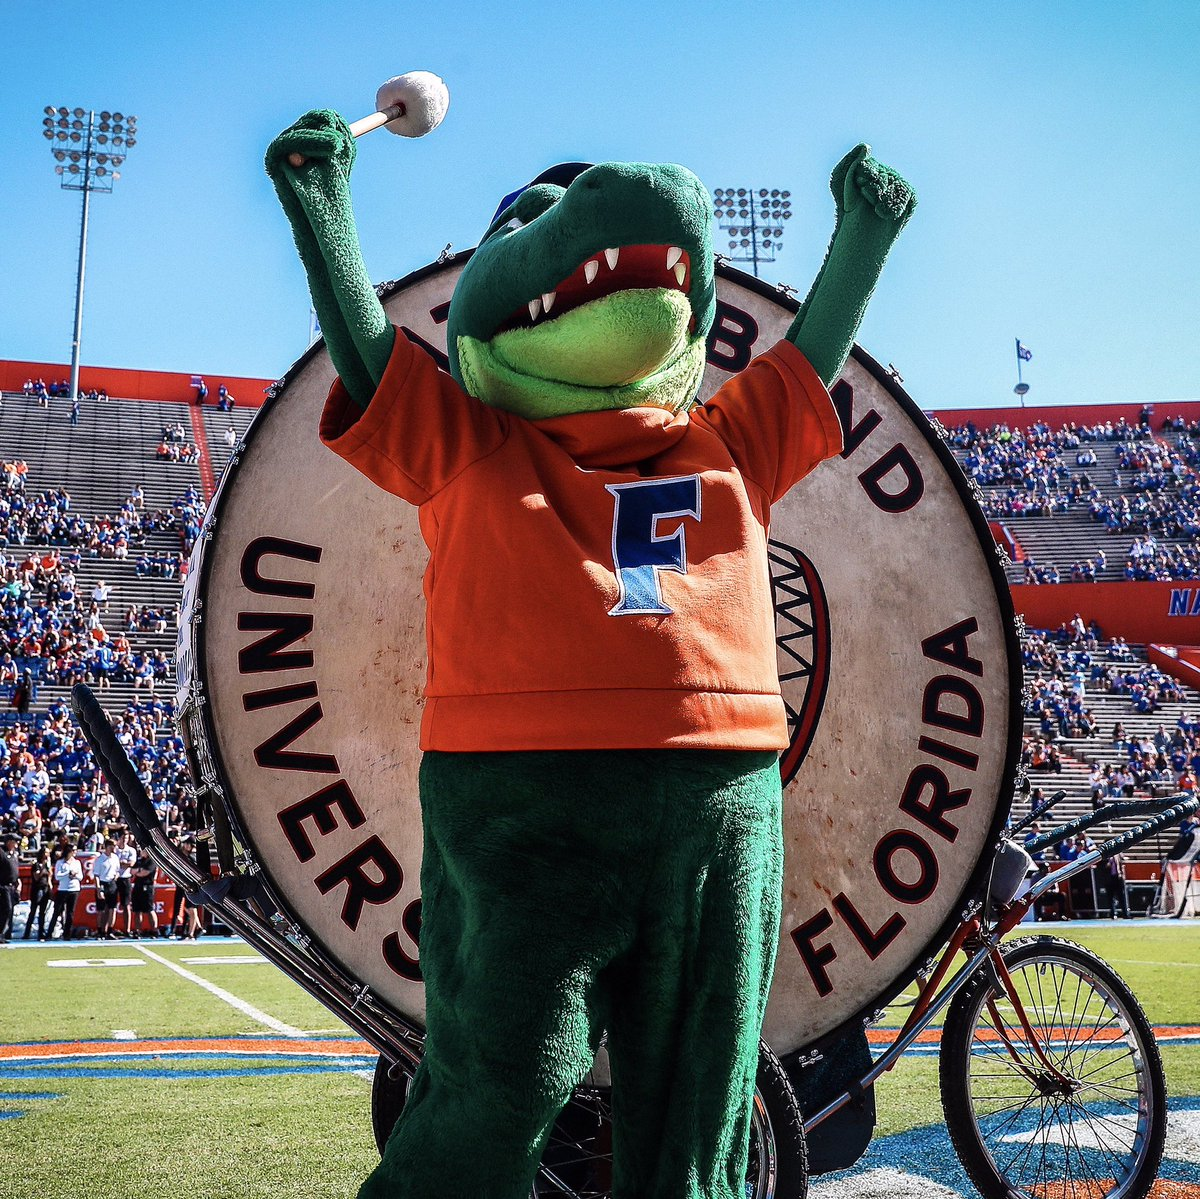 Replying to @AlbertGator: Life is GREAT when you're a 🐊  #GoGators